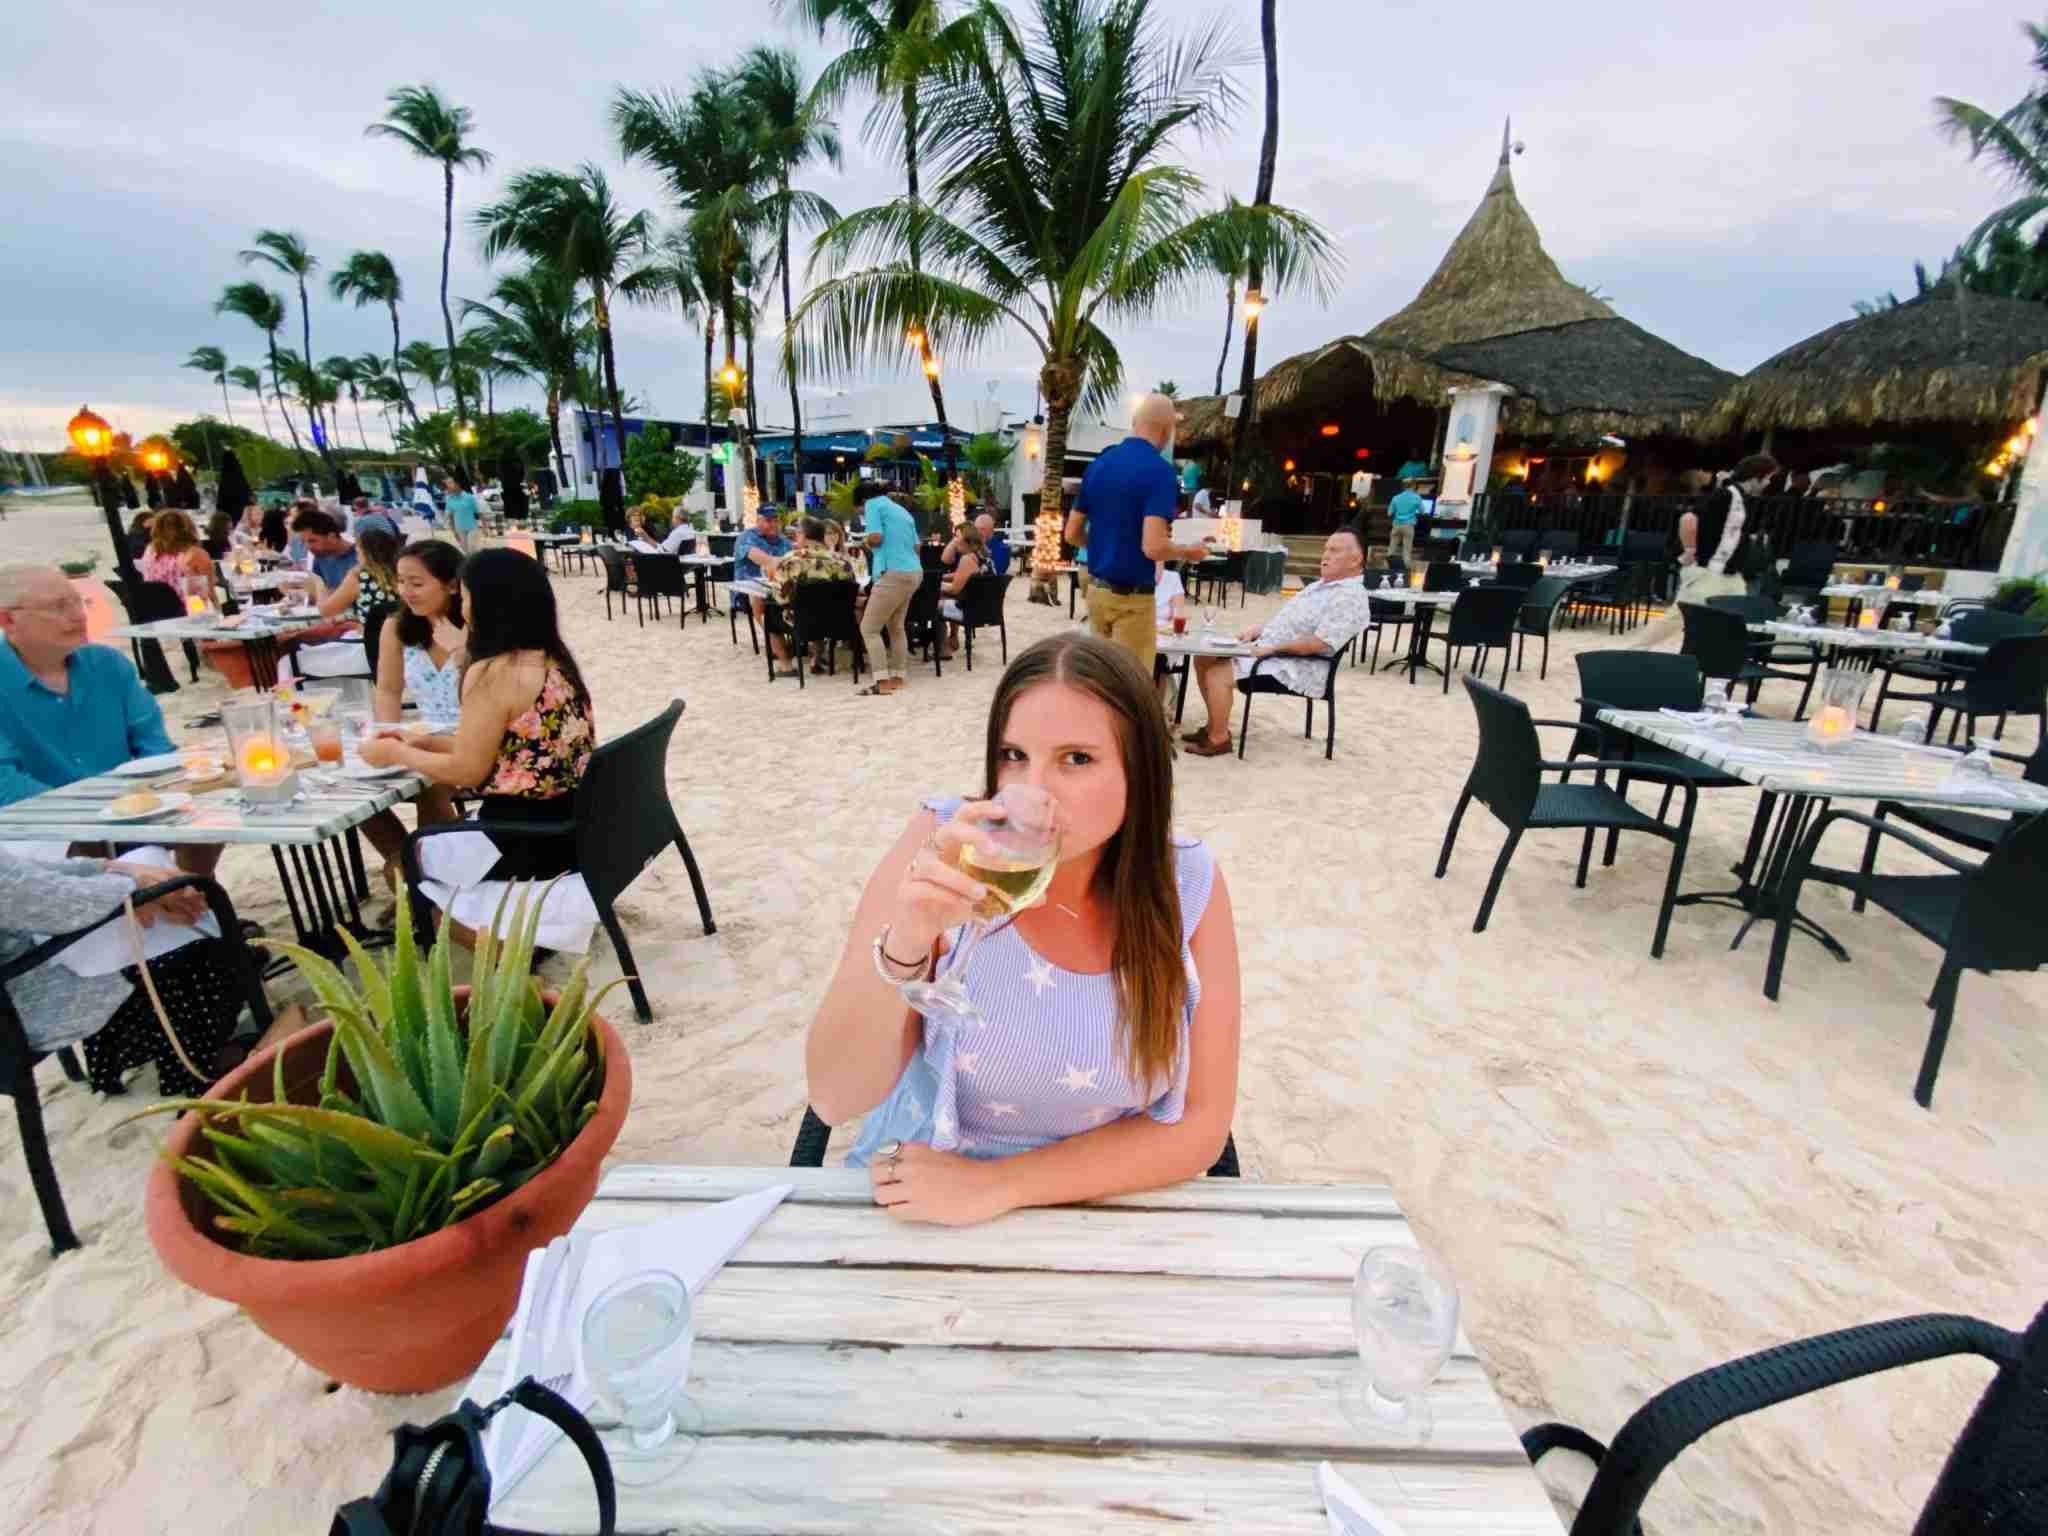 Dining on the beach at Barefoot. Photo courtesy of Samantha Rosen/The Points Guy.